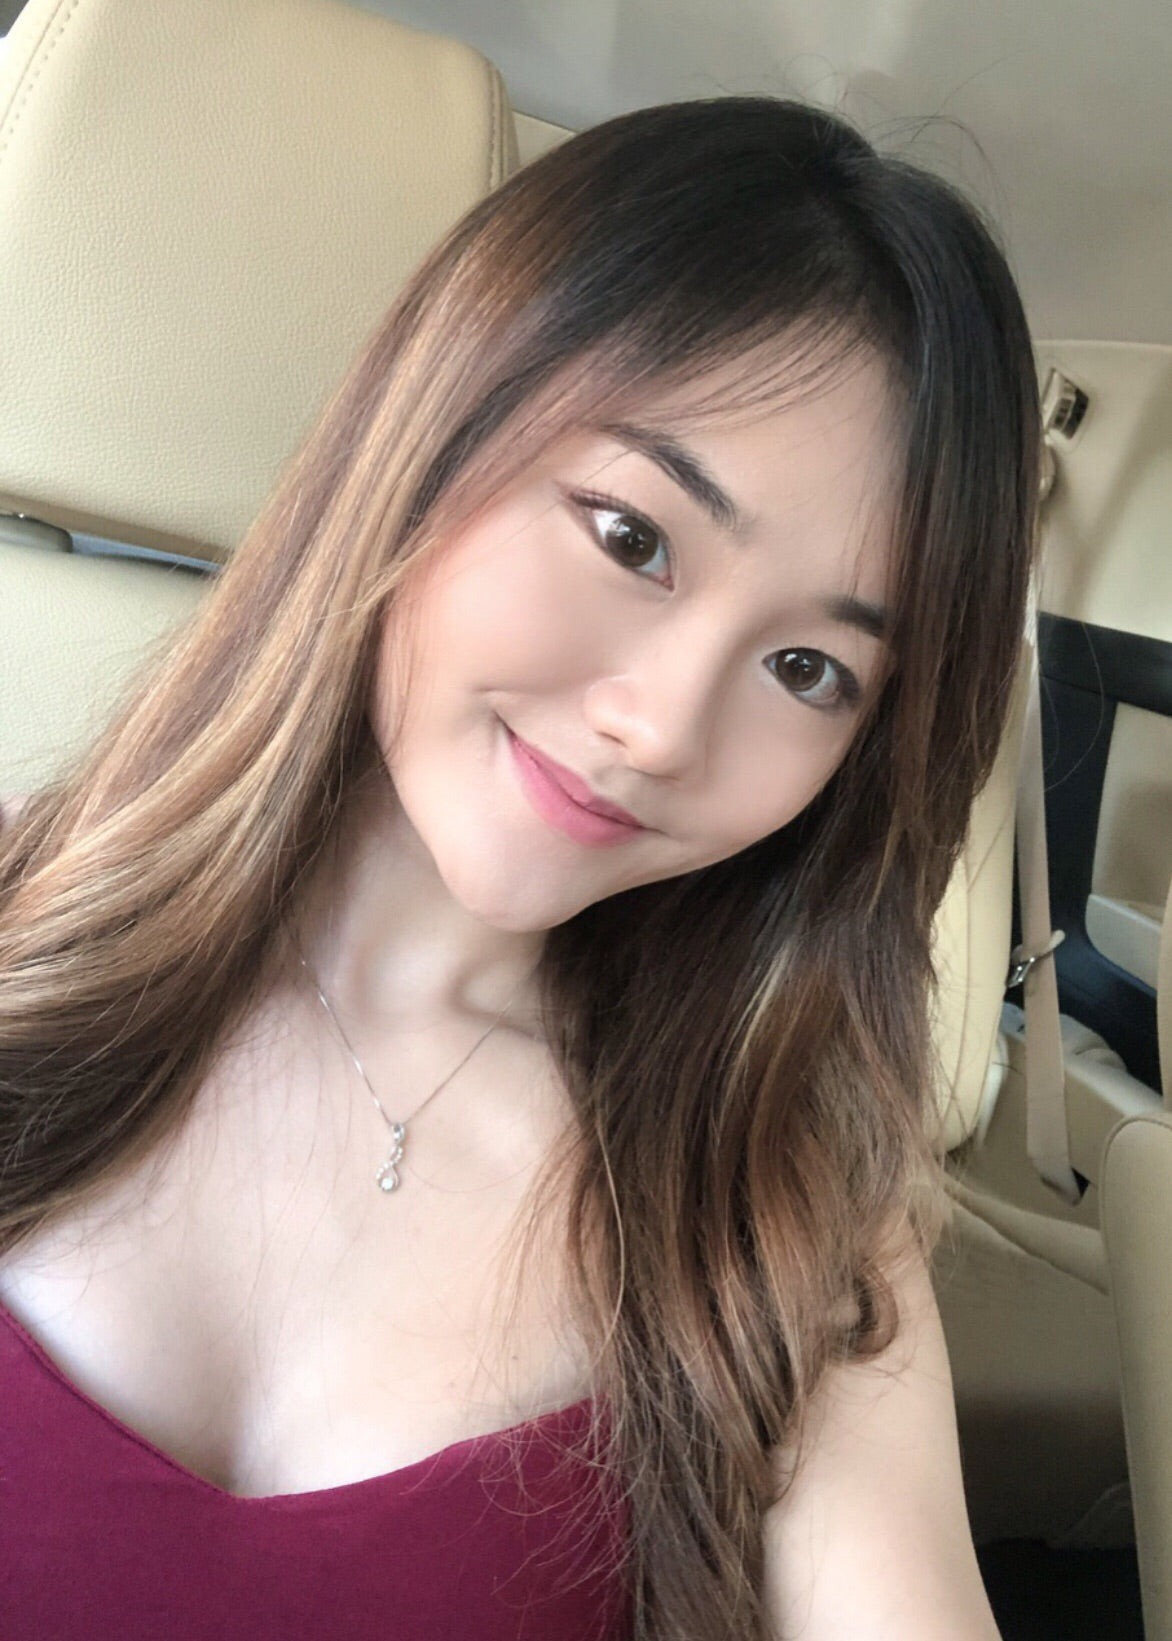 Rent a Friend | Rent a Date | Meet Someone New | Dating Experience | Maybe Singapore |